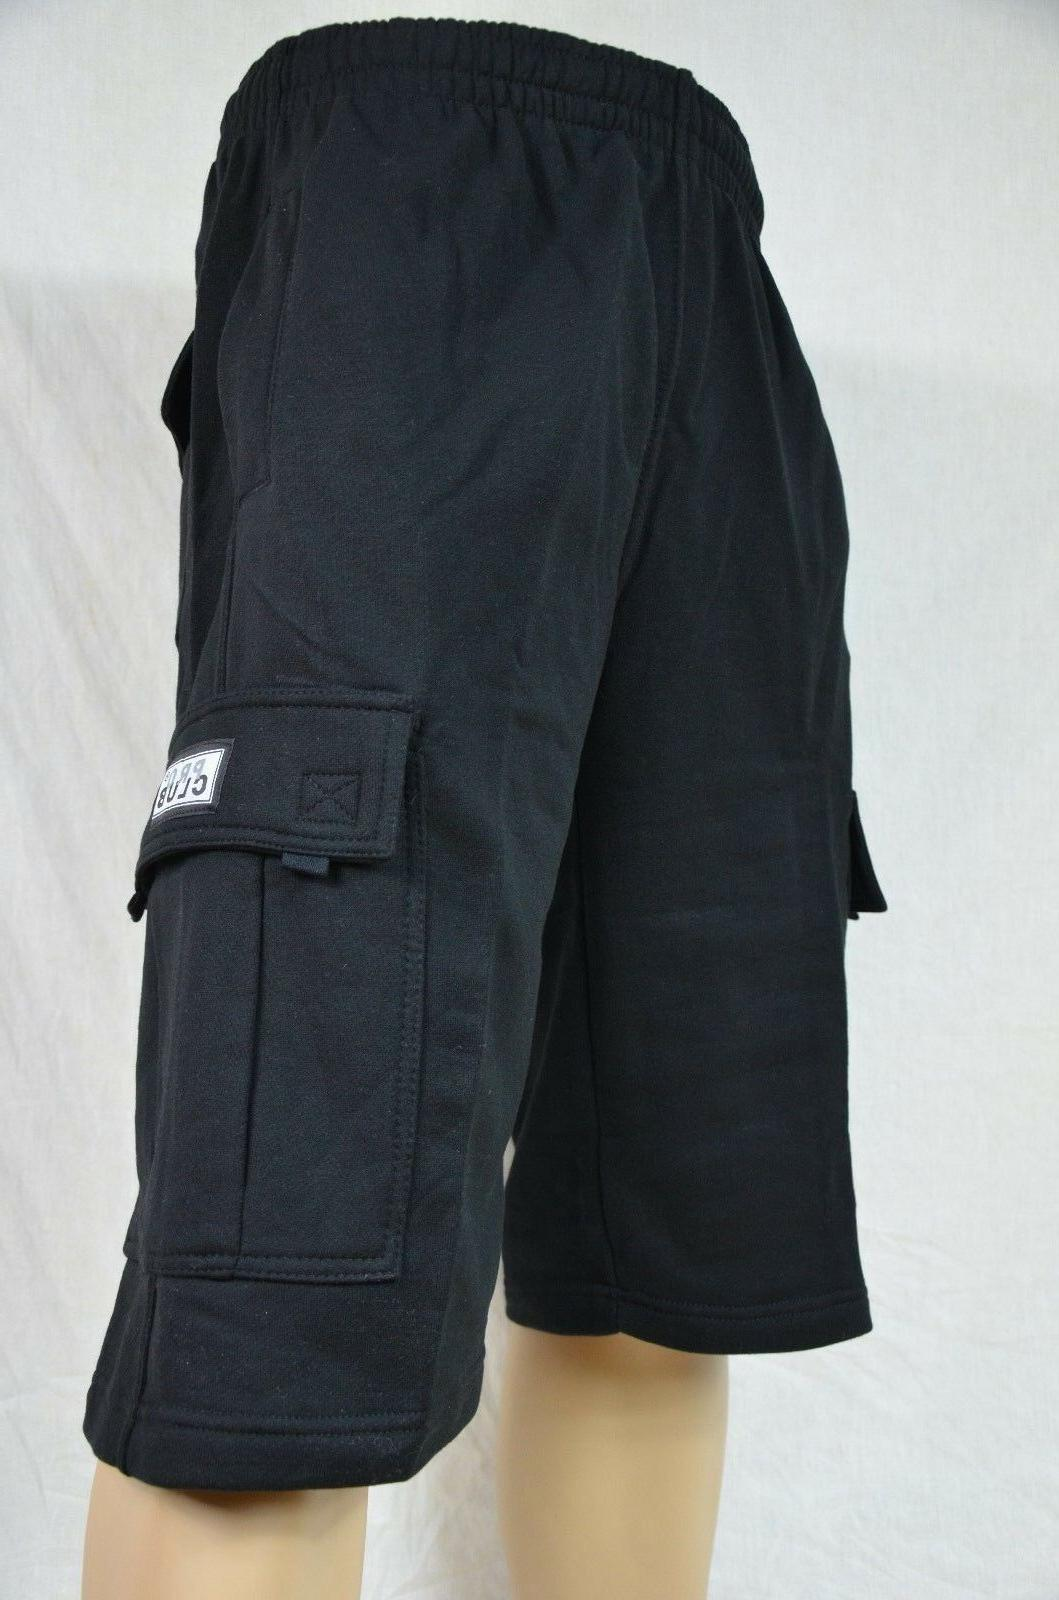 NWT Weight Cargo Shorts Mens Sweatpants